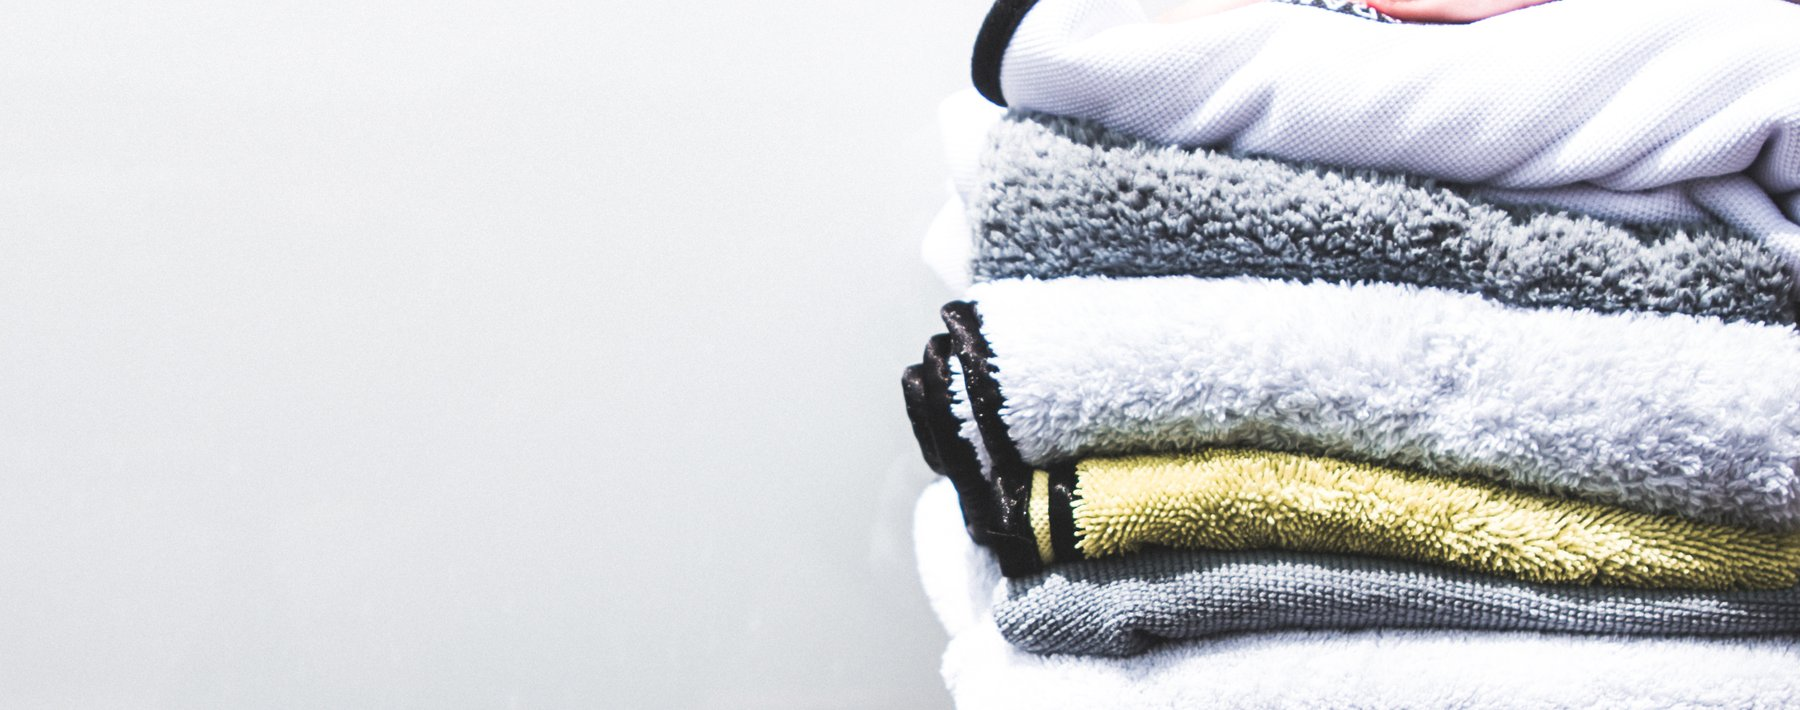 How to Clean your Microfiber Towels